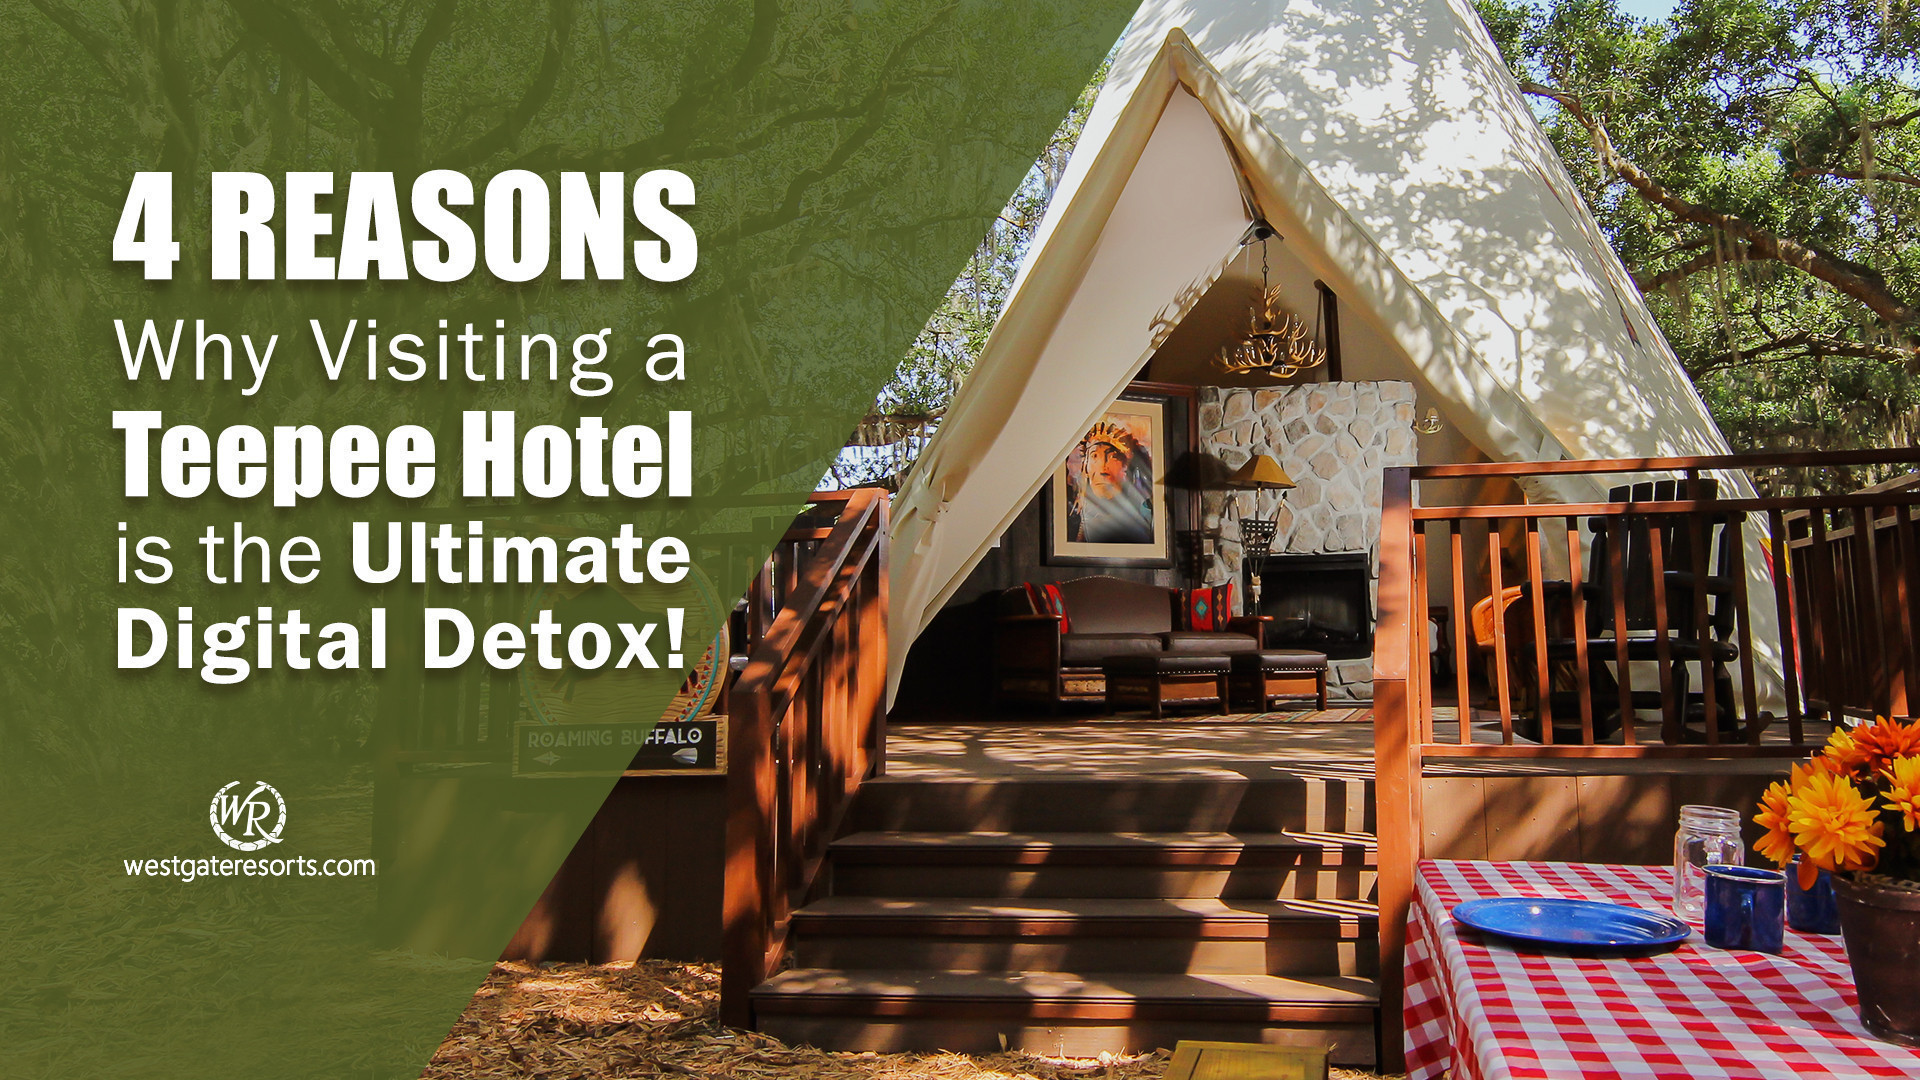 Teepee Hotels for Digital Detox | Teepee Hotels & Teepee Camping | Westgate Resorts